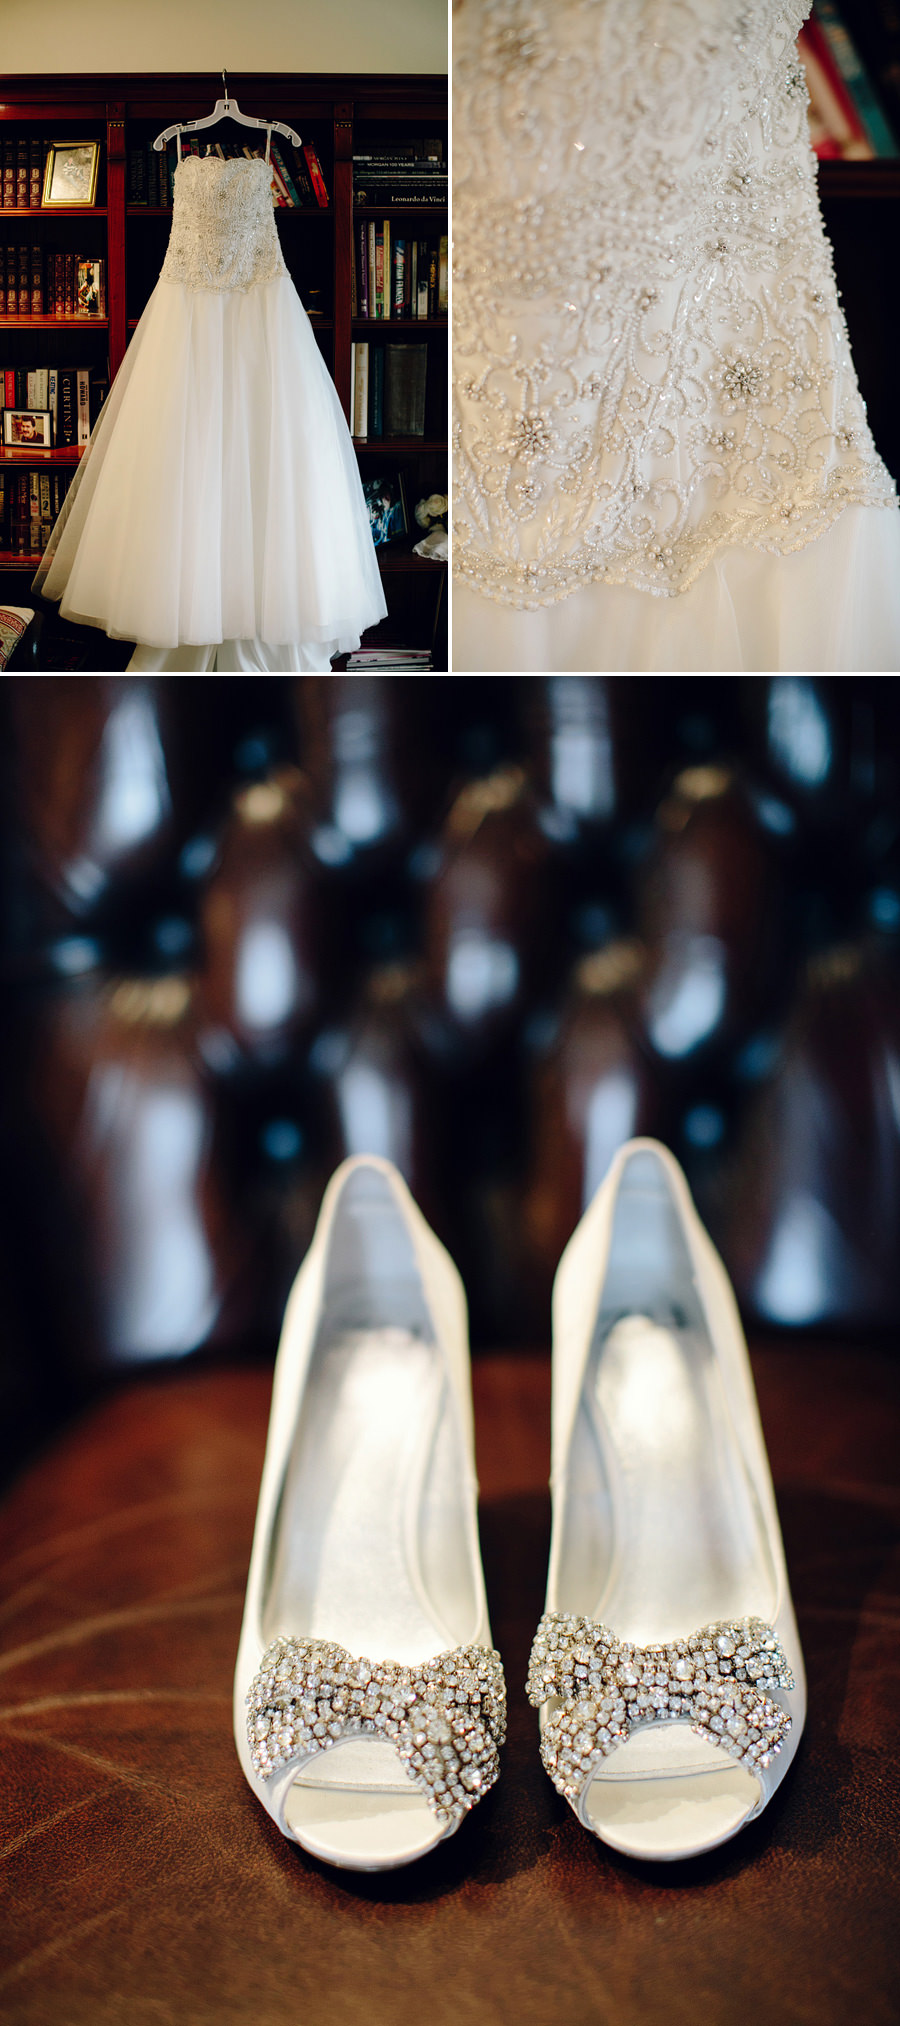 St Ives Wedding Photographer: Wedding dress & shoes